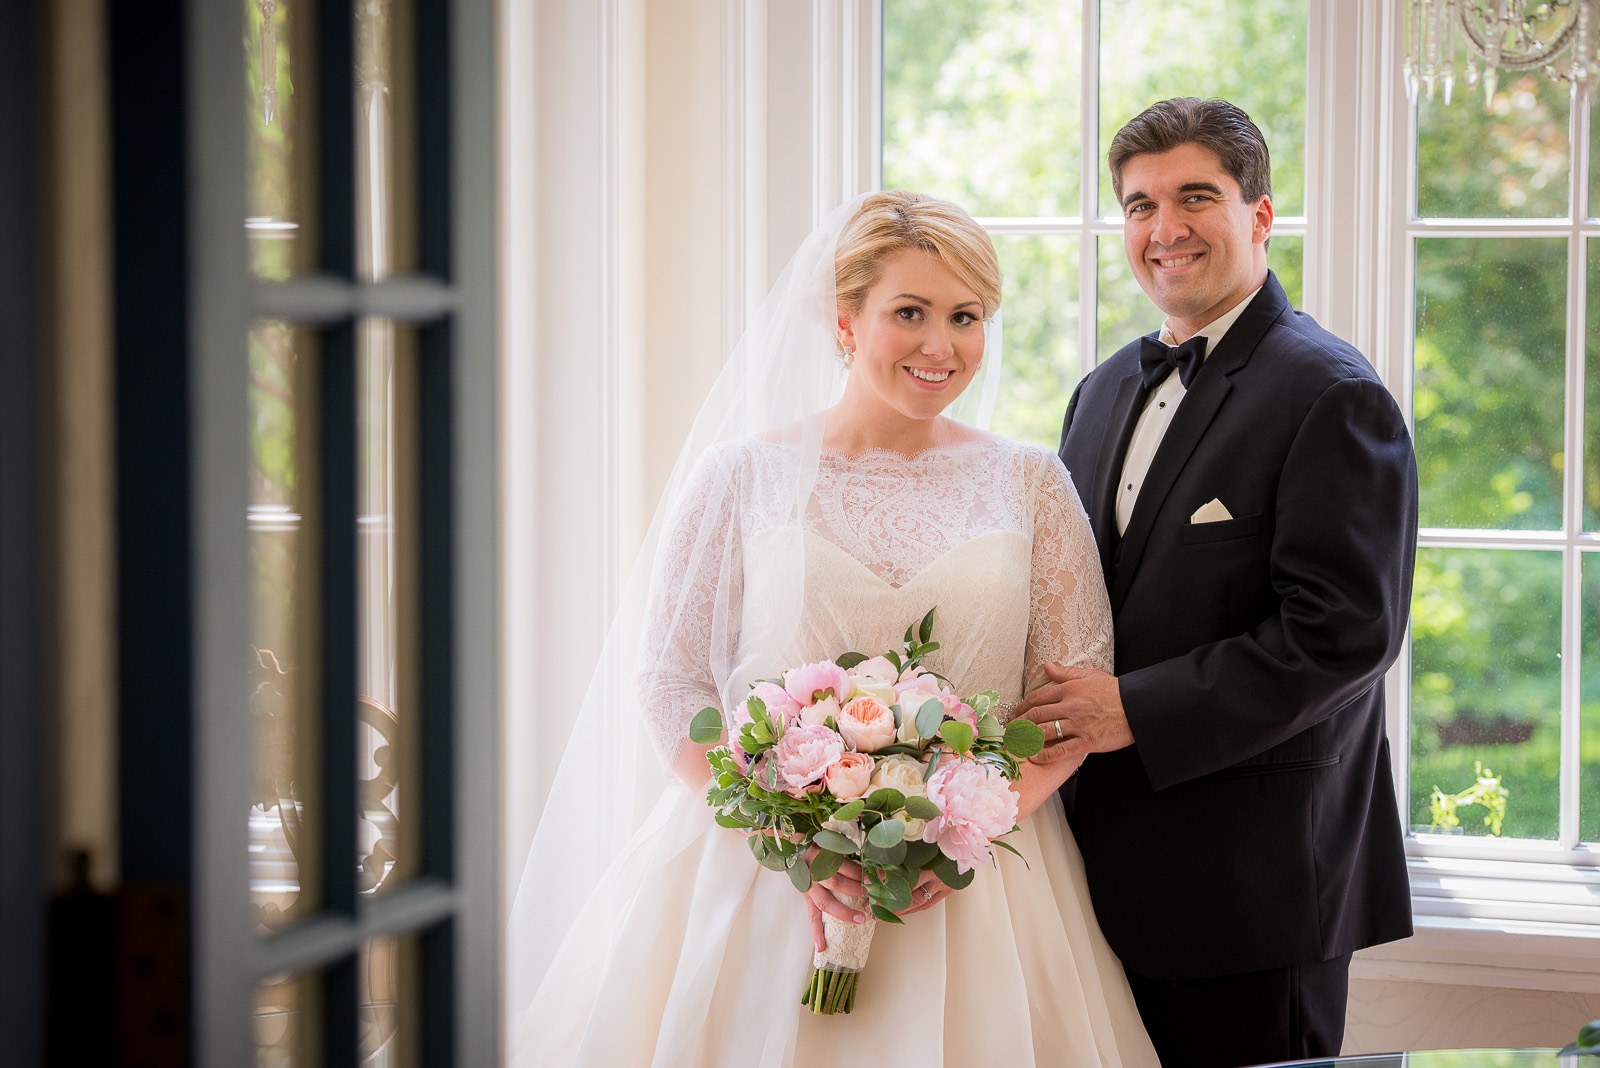 eric_and_christy_photographers_blog_wedding_emilypeter-23